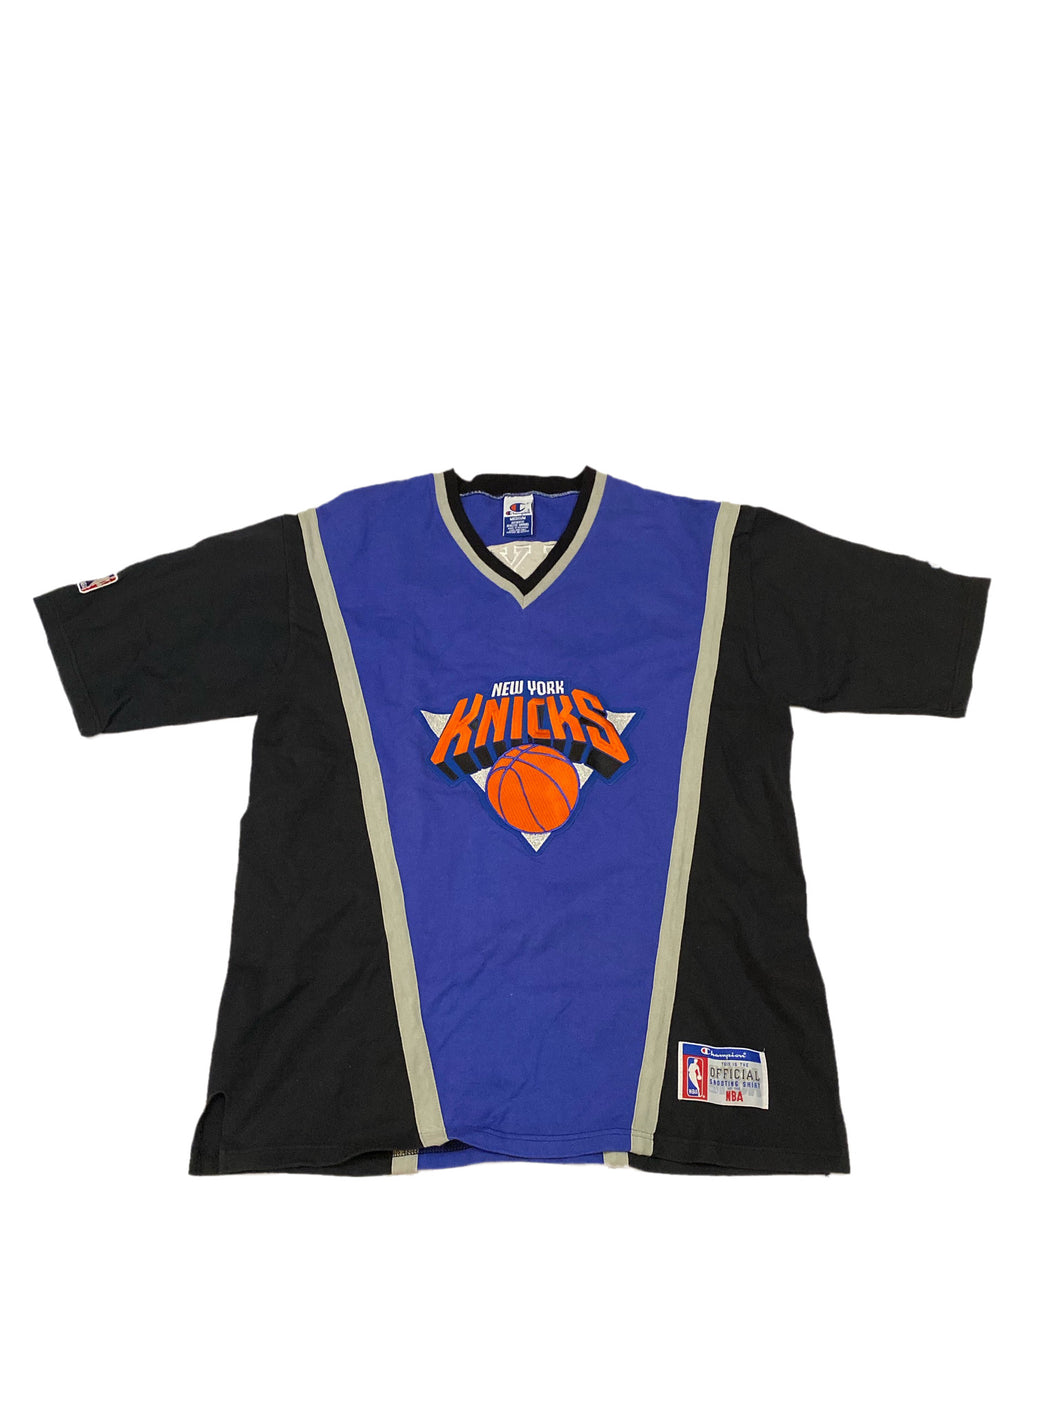 New York Knicks Shooting Shirt